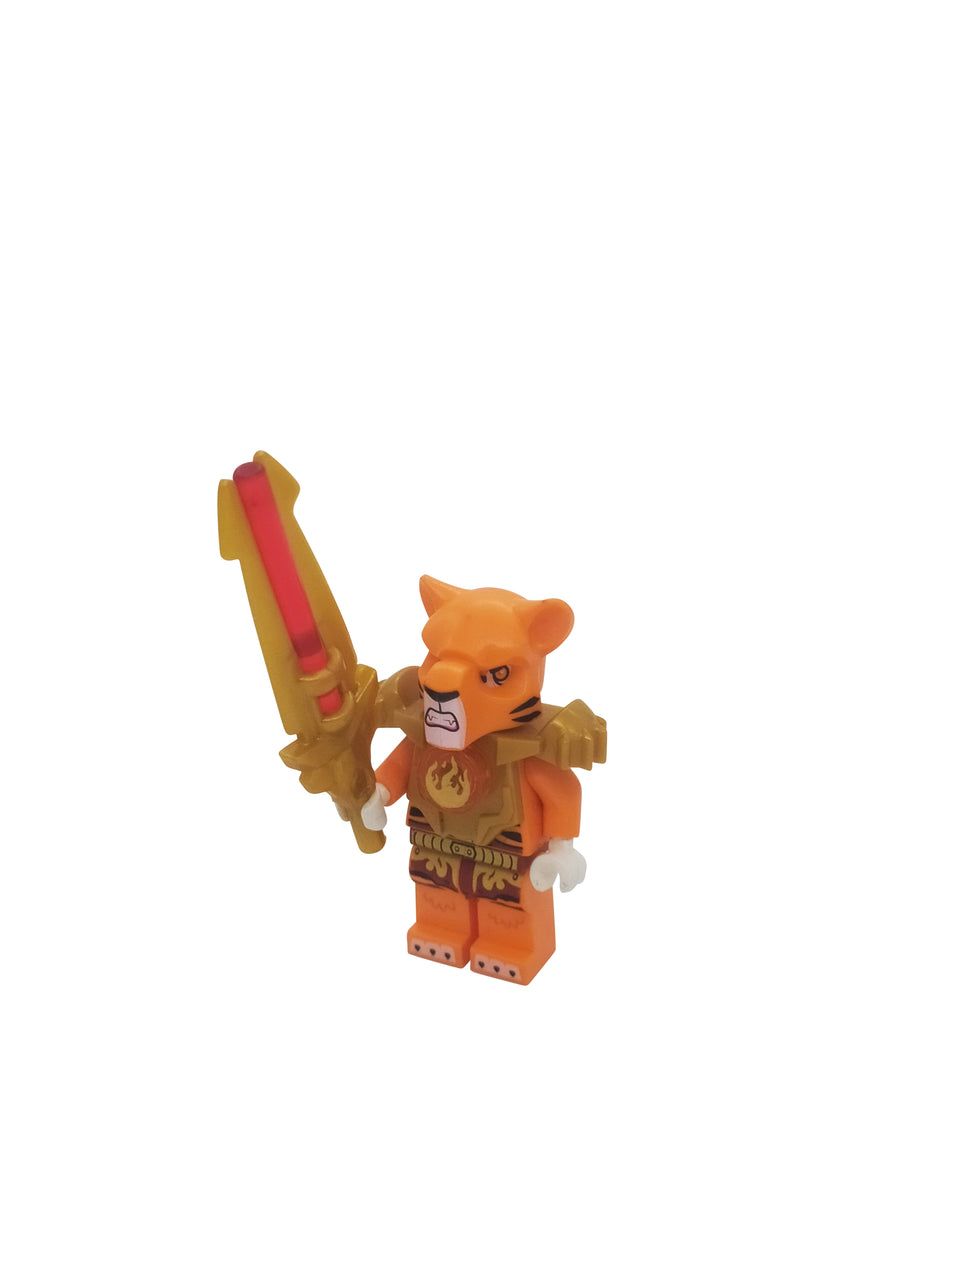 lego chima special minifigure with sword